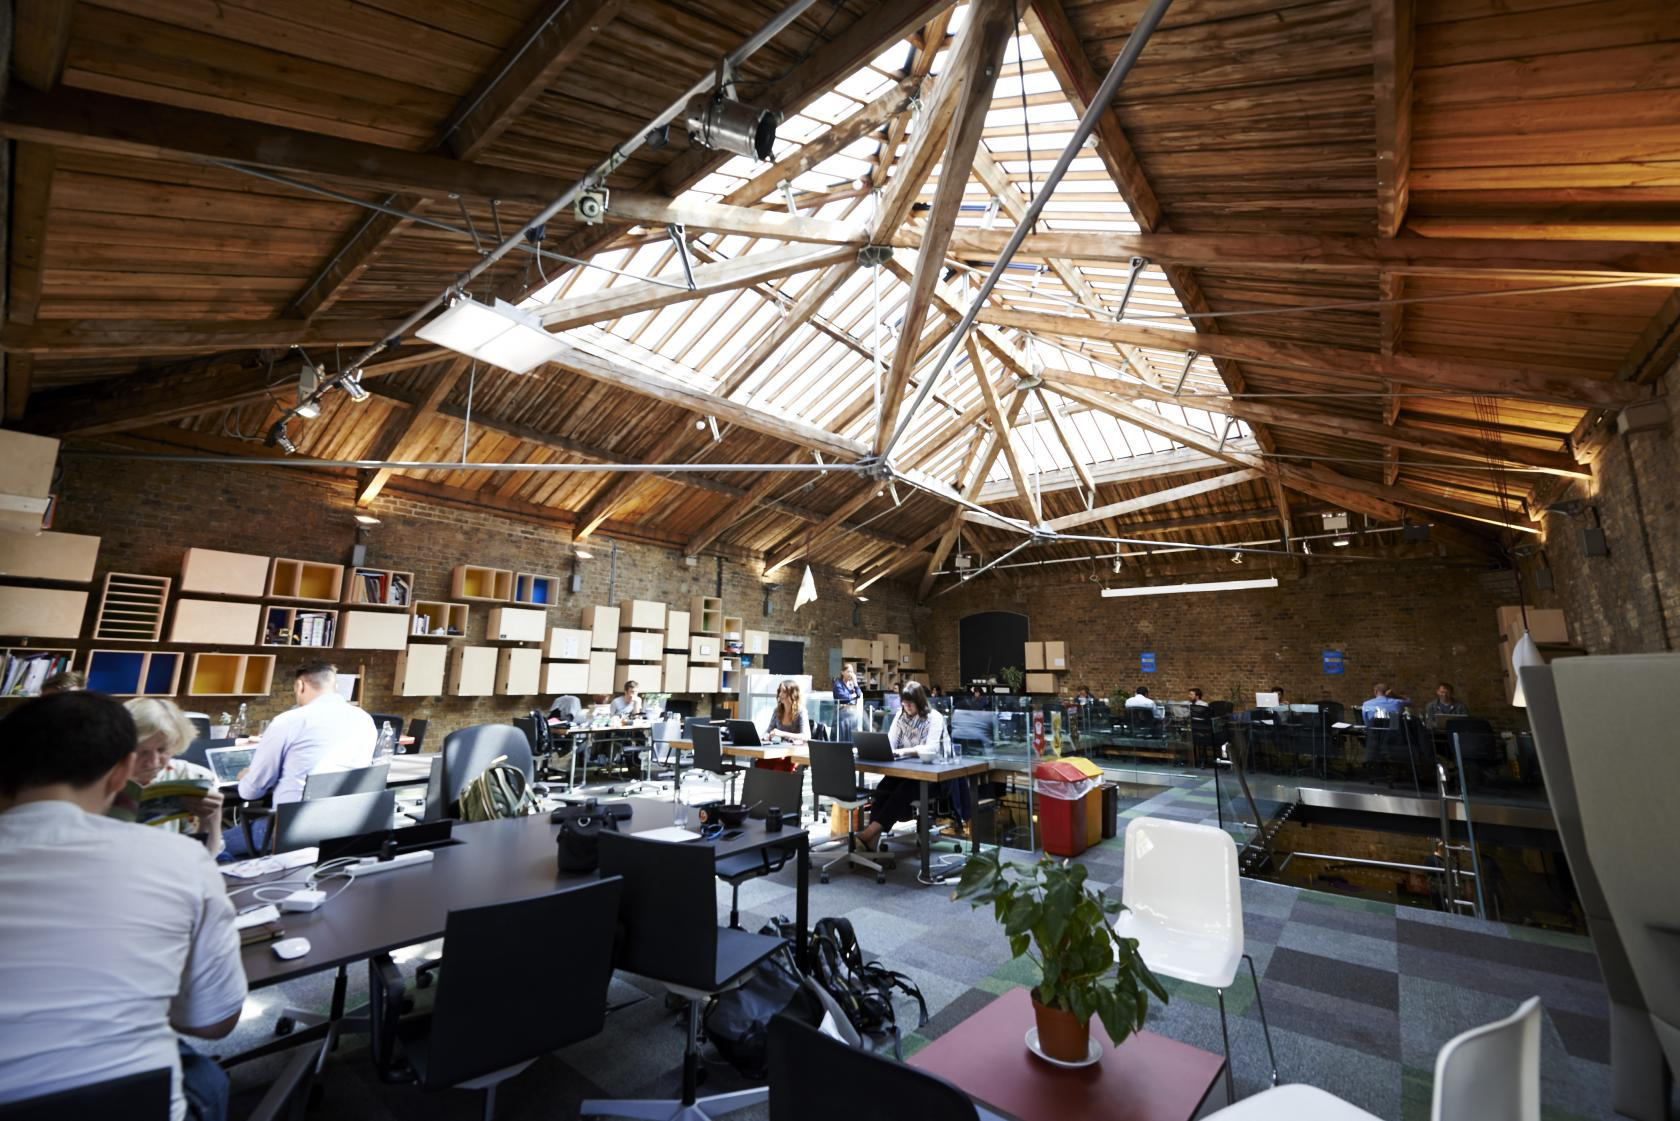 Refurbished in 2007 as a co-working hub, this grade II listed building still embodies the character of its warehouse heritage, with exposed bricks and steel beams on show under a modern skylight that floods the space with natural light.